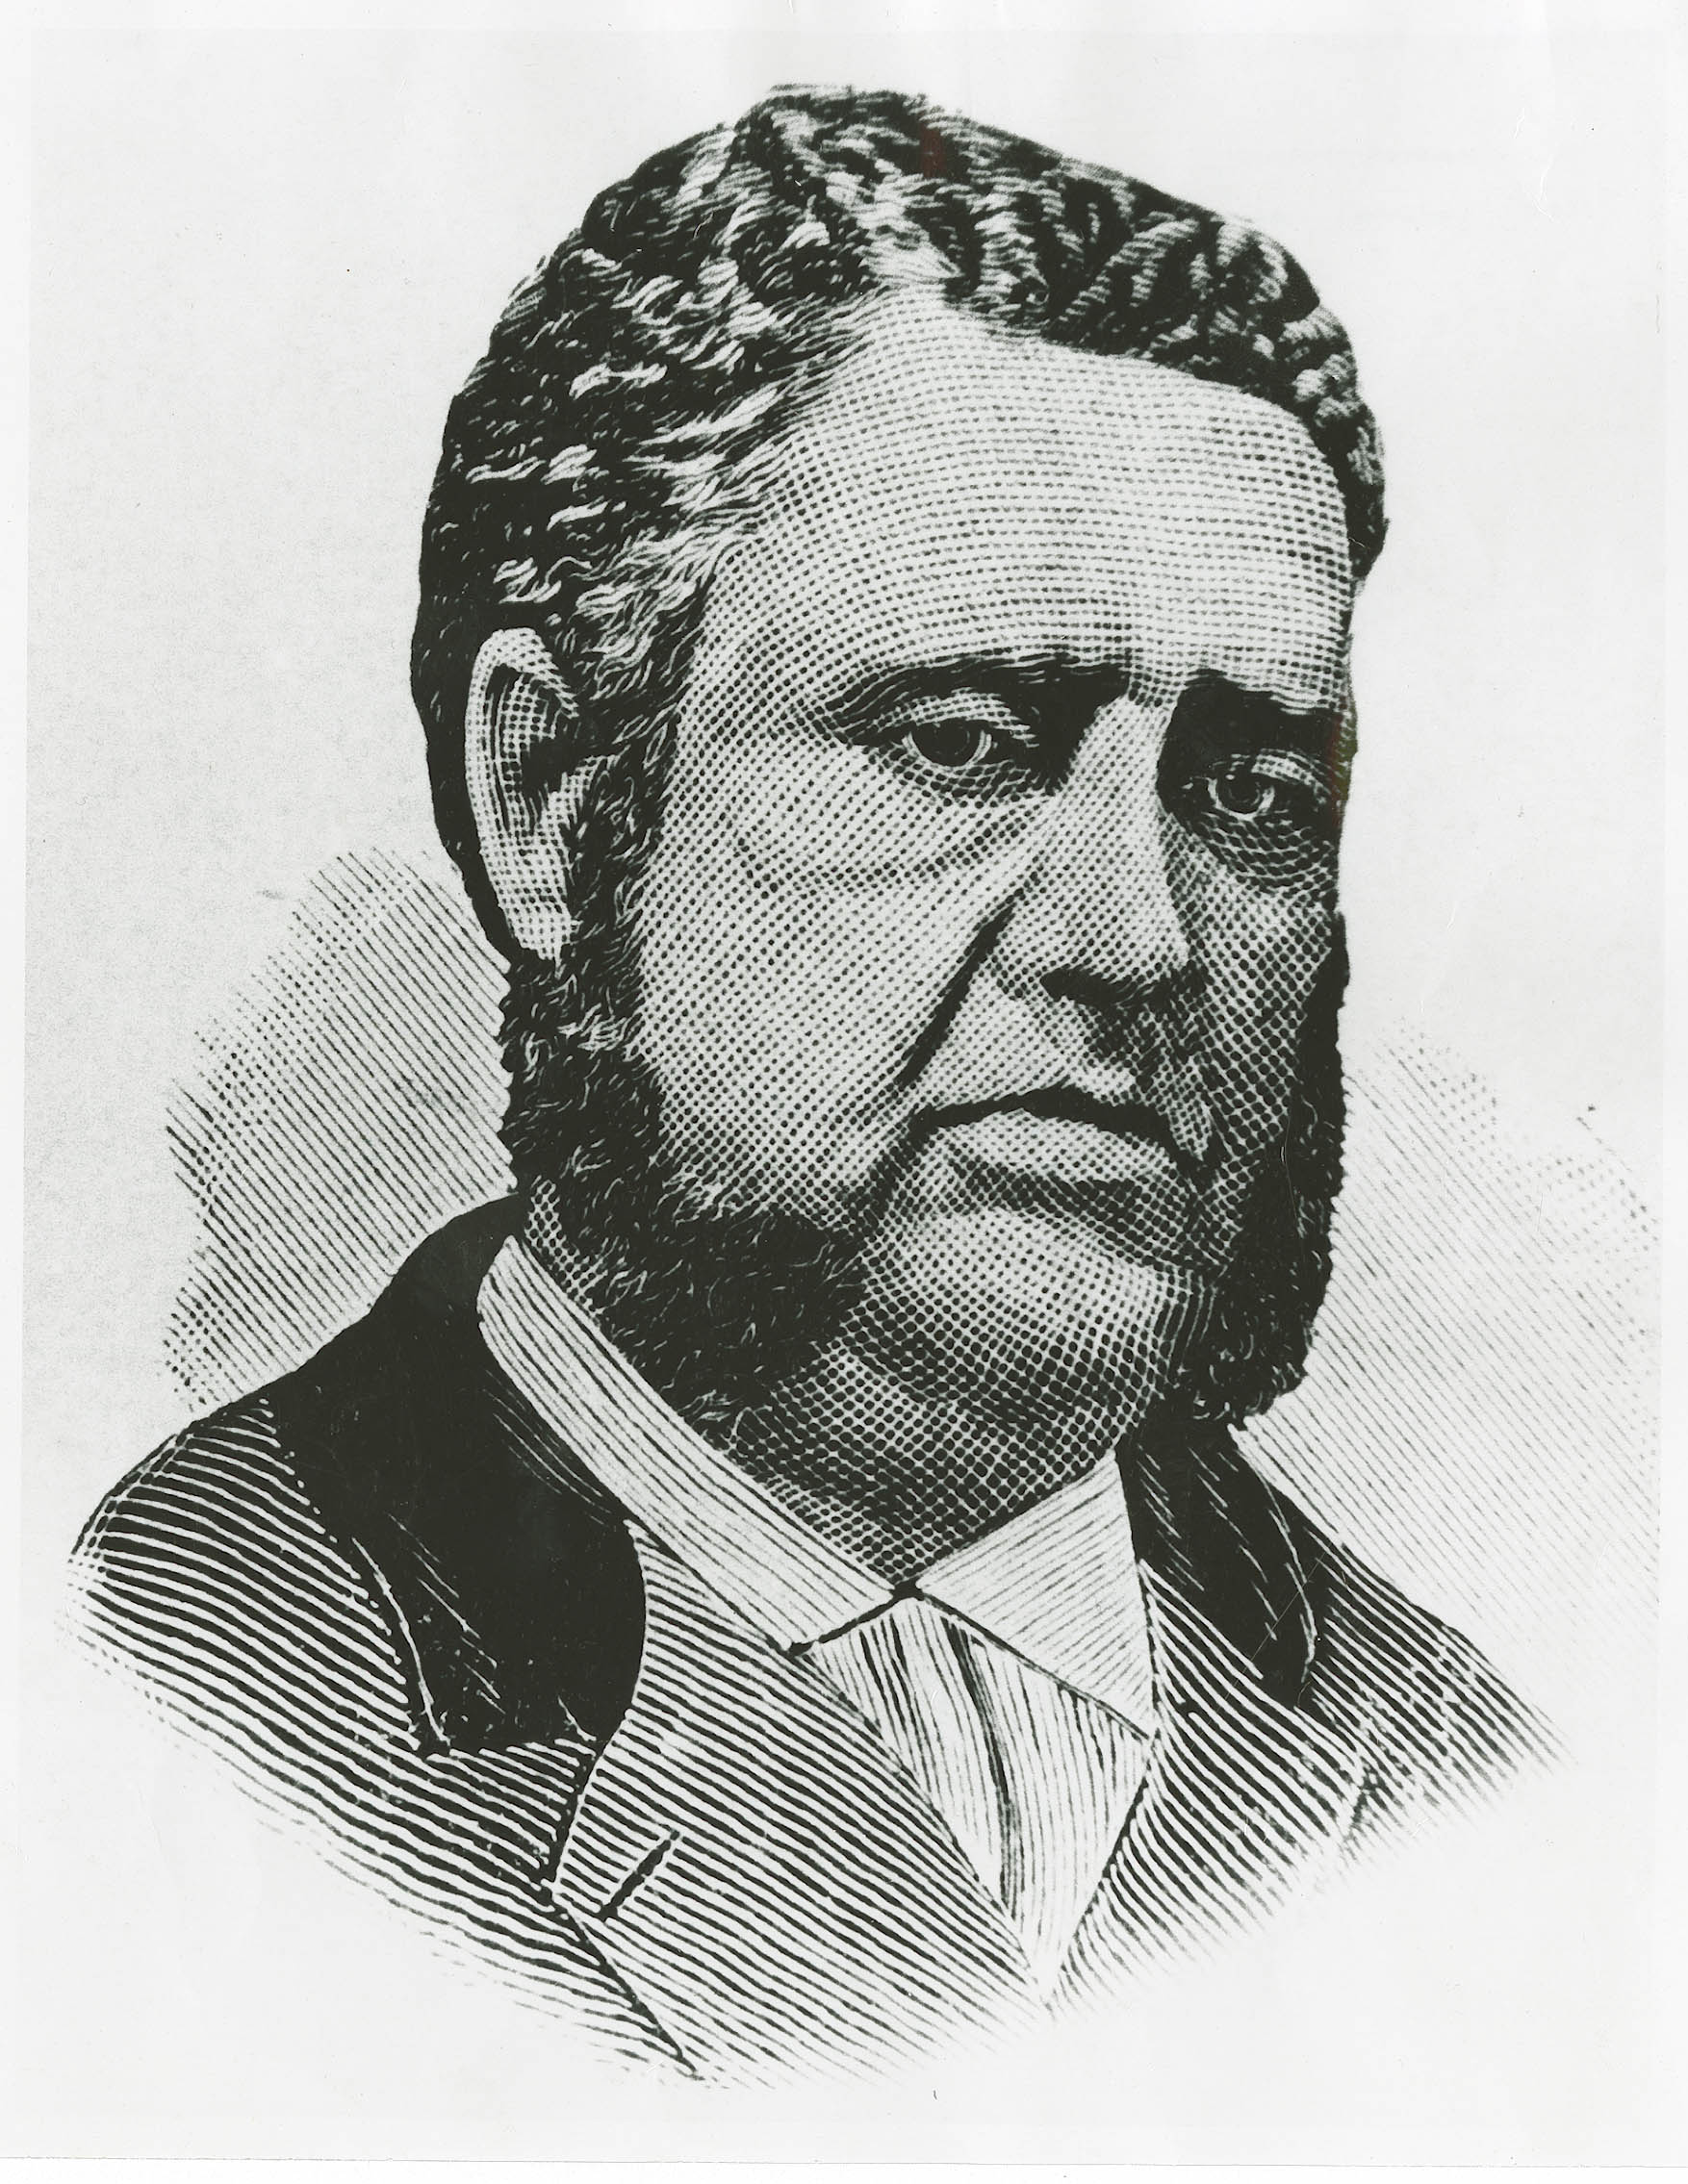 Sketch of Francis L. Cardoza